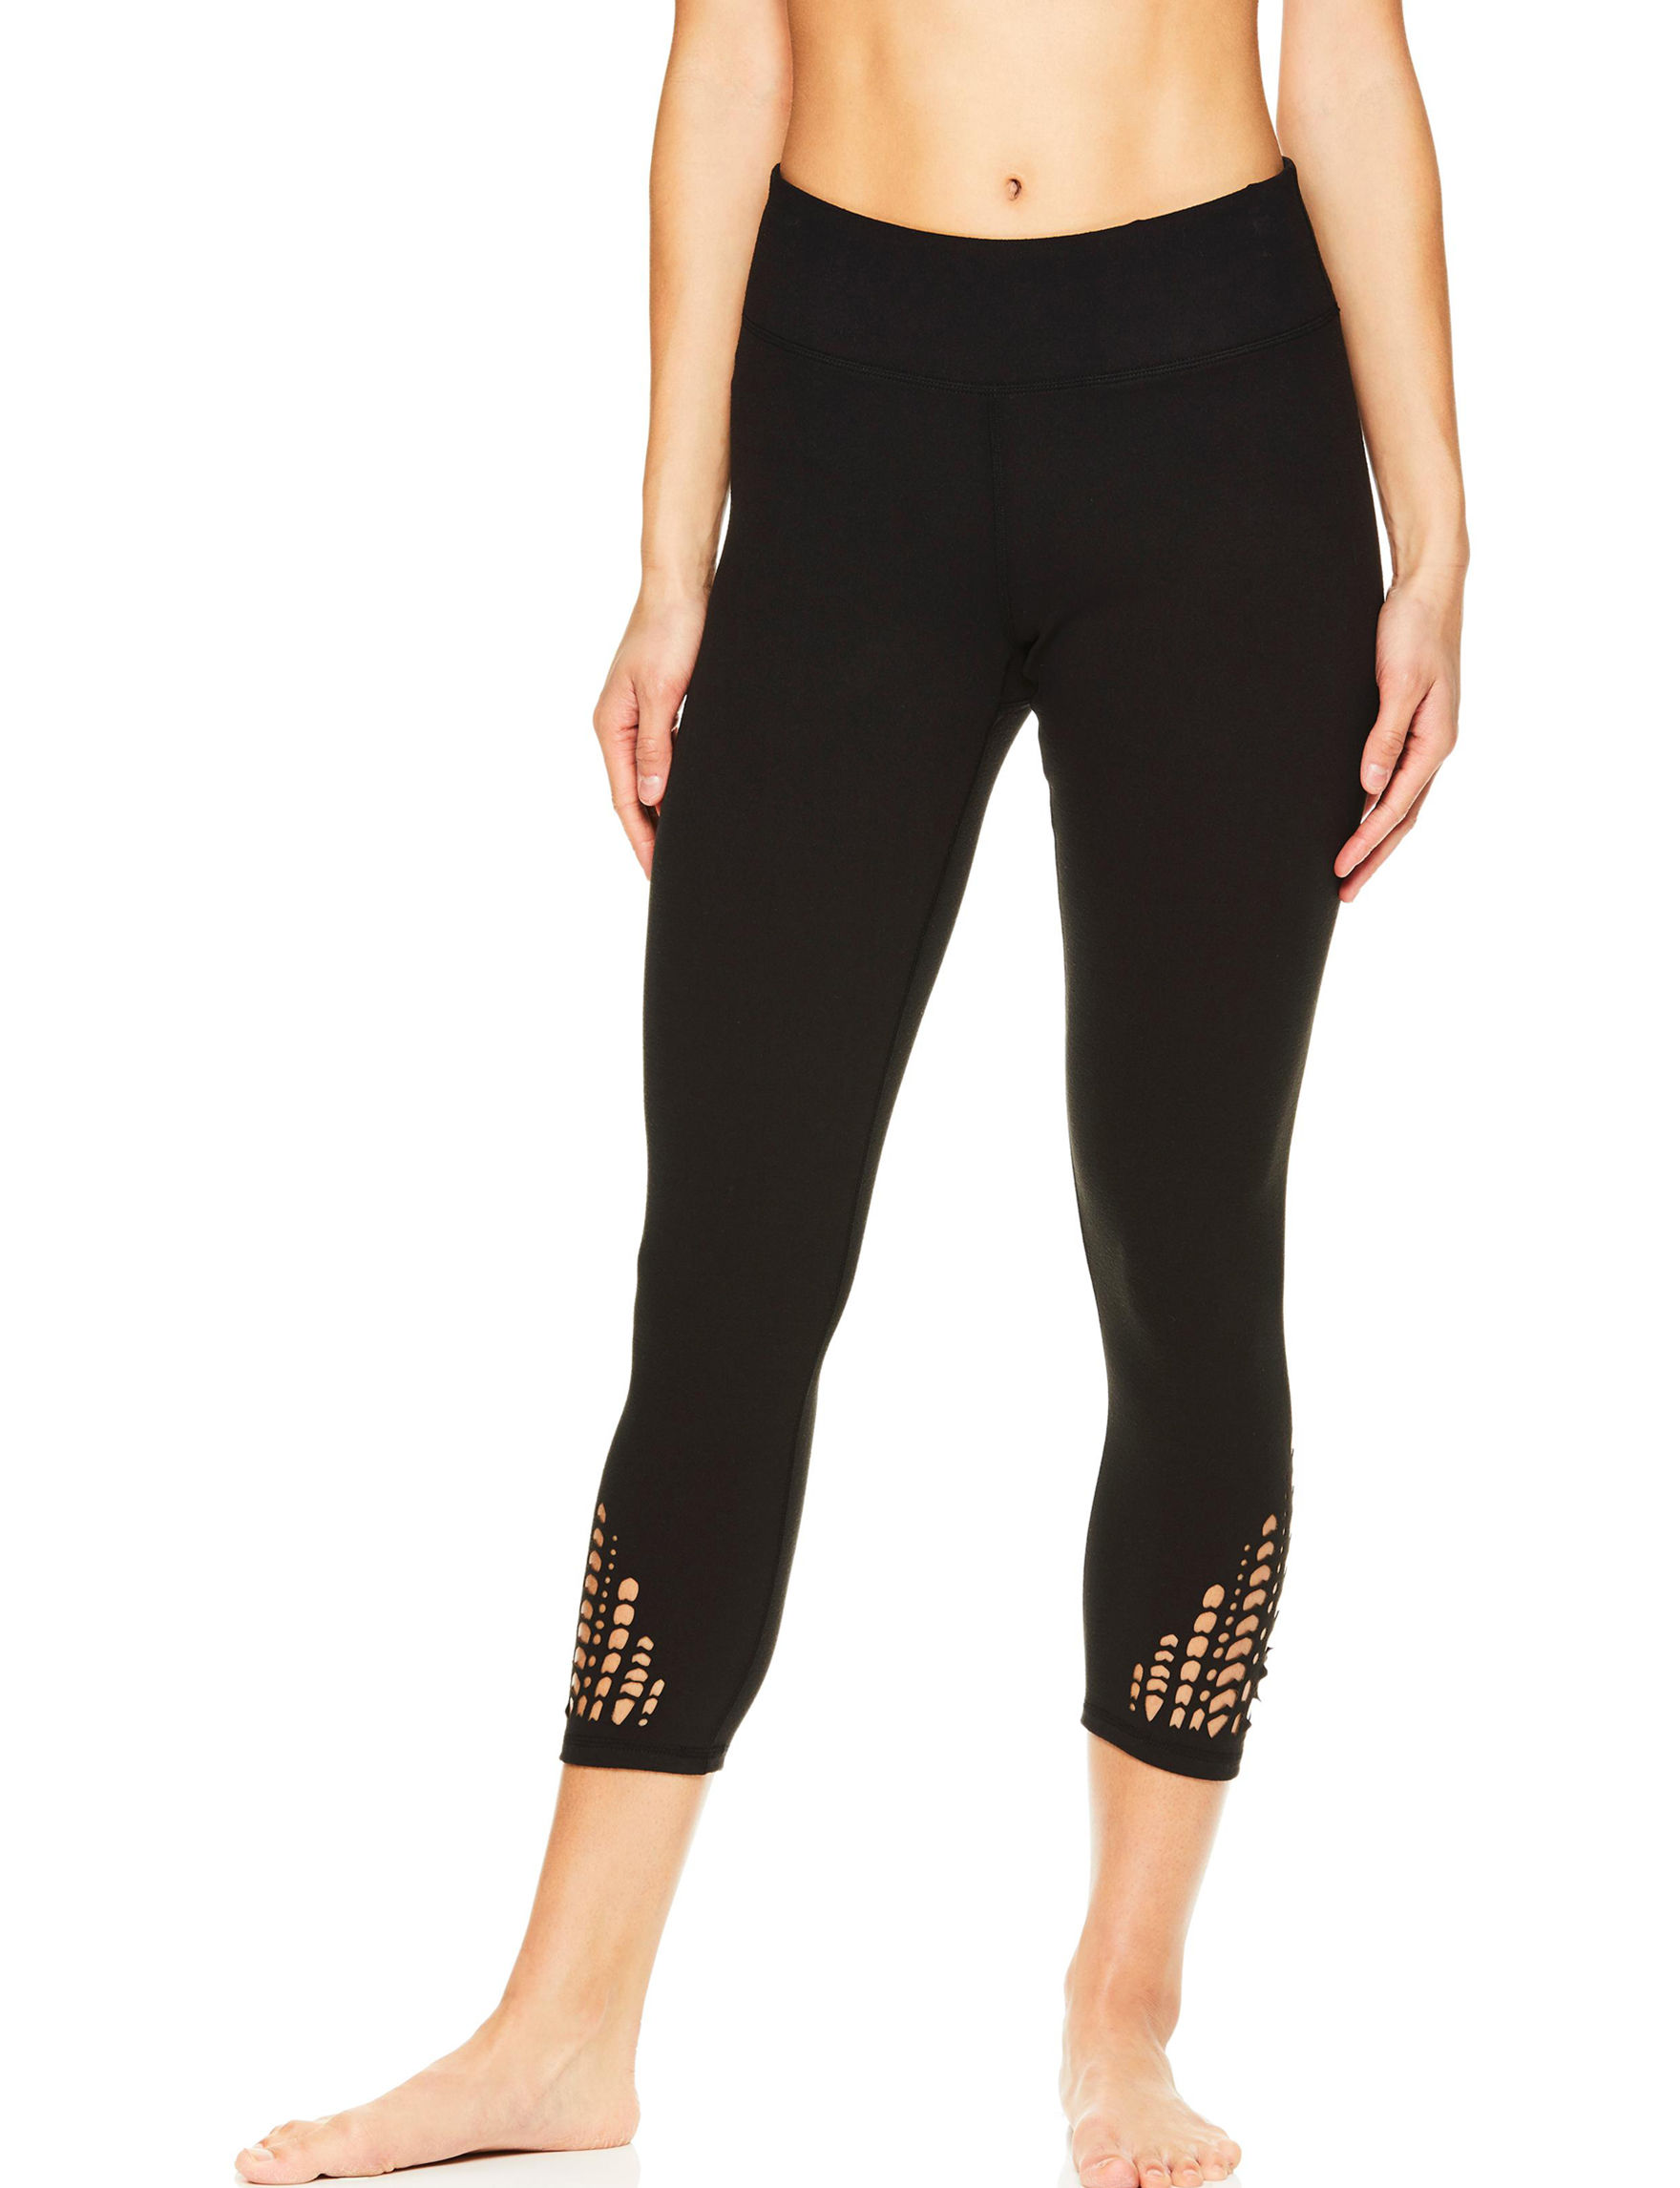 Gaiam Black Capris & Crops Leggings